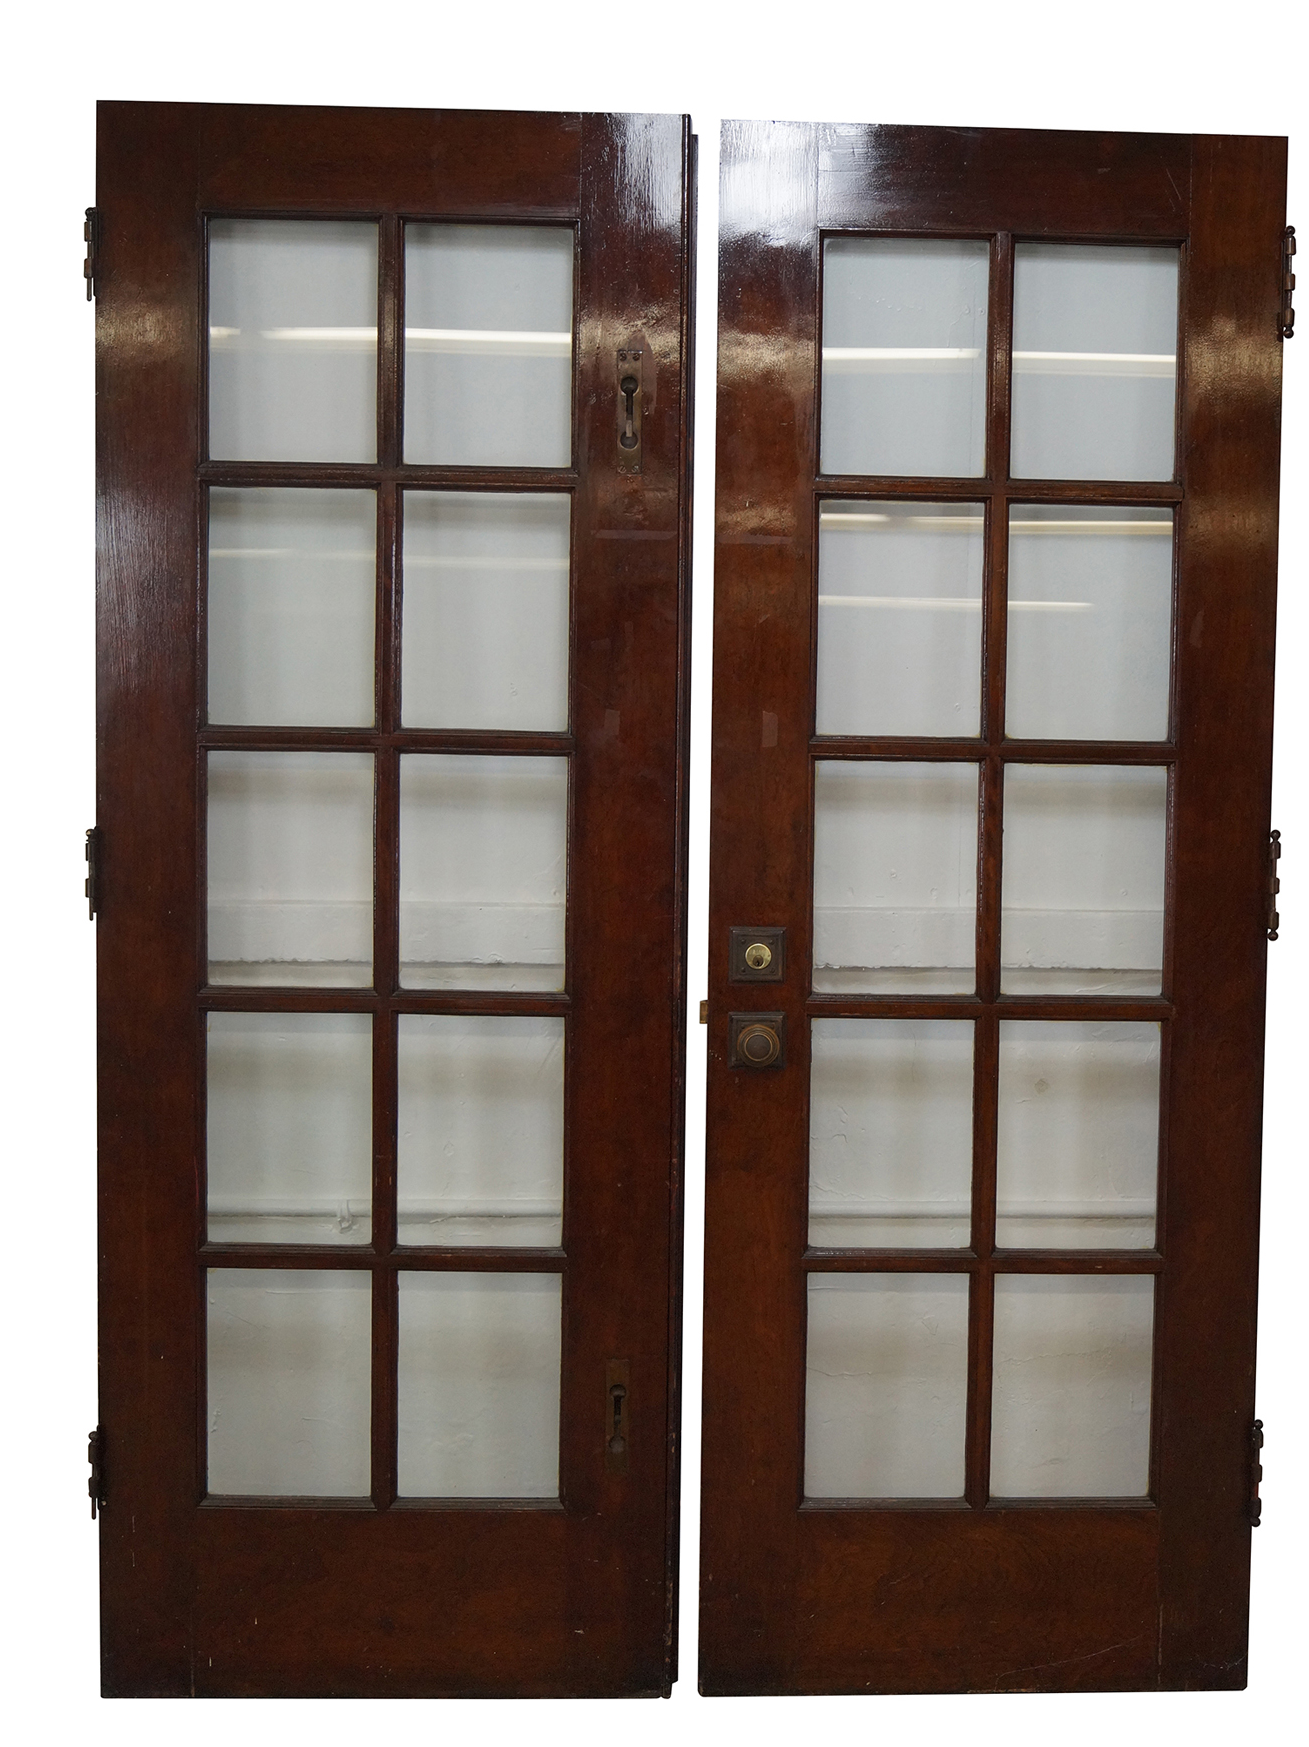 1747 #351C14 Vintage Mahogany Double French Doors A Pair Chairish wallpaper 3ft French Doors 46651309